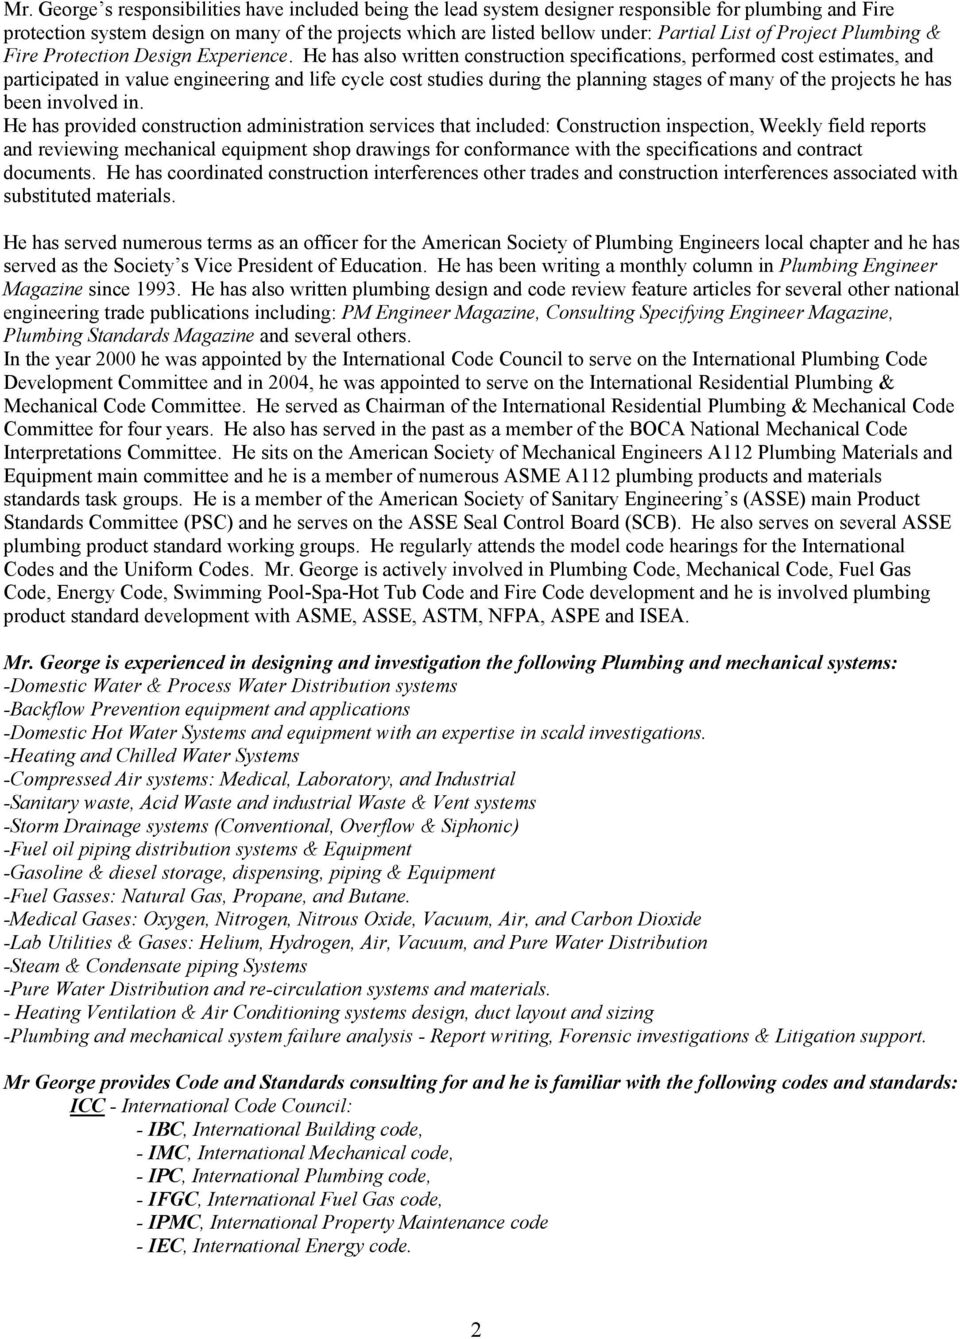 Resume for ronald l george cipe cpd president ron for Uniform swimming pool spa and hot tub code